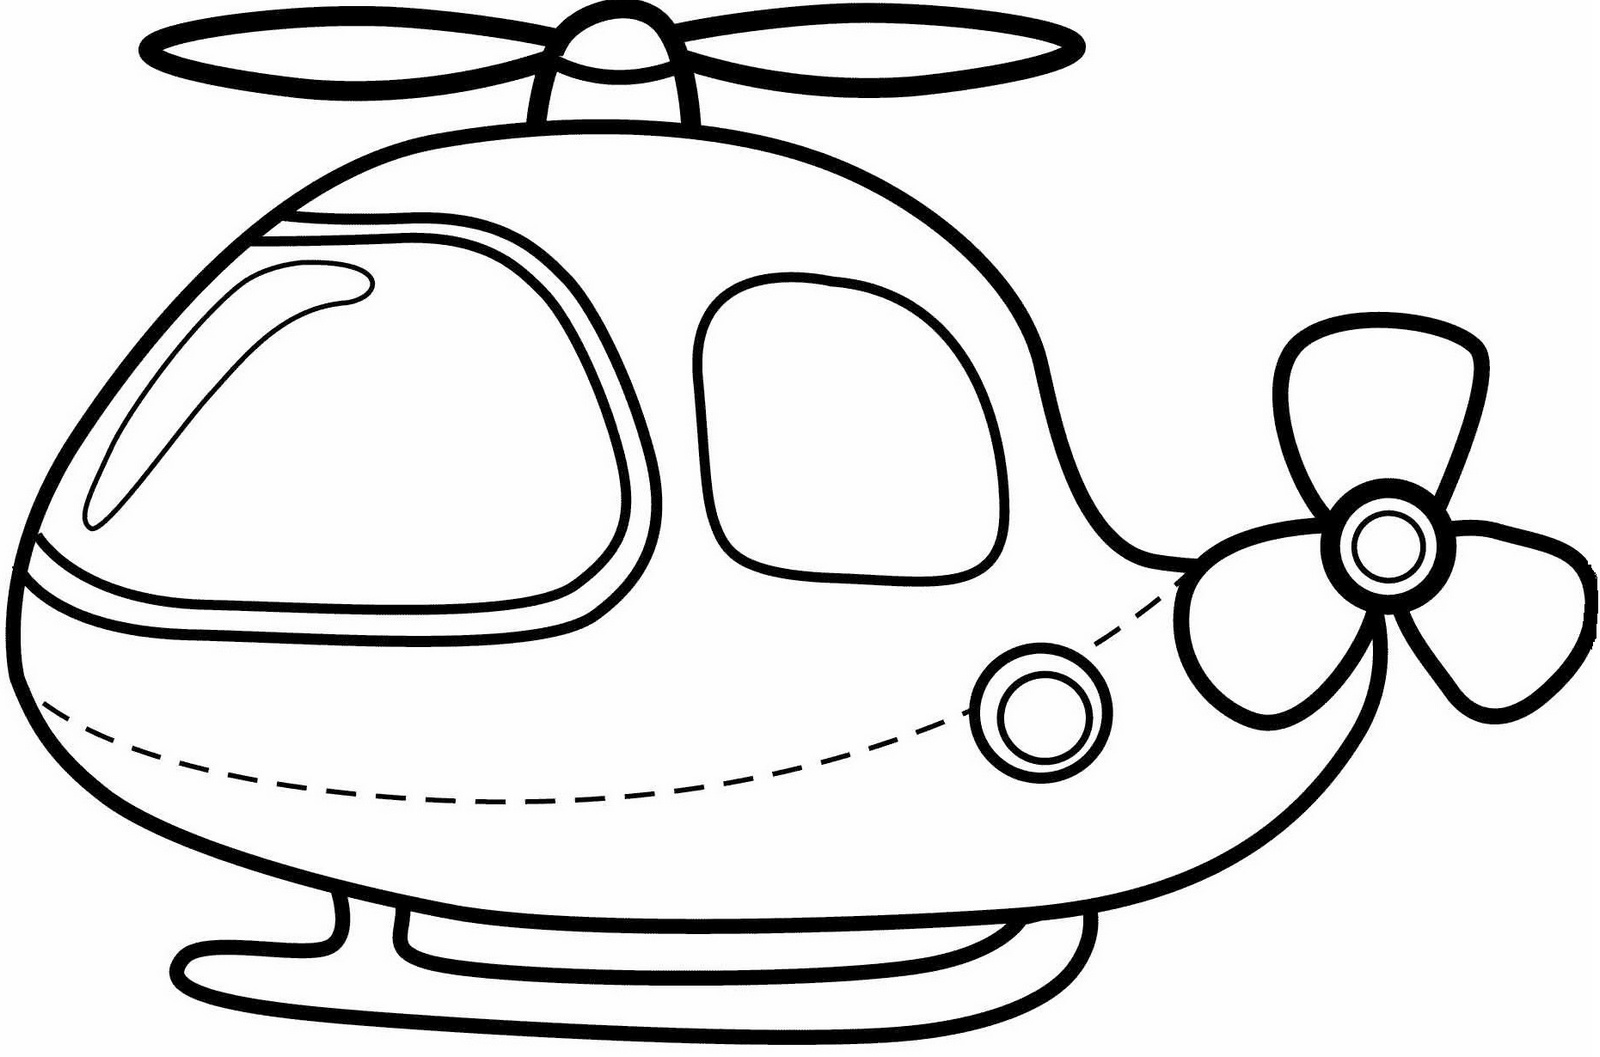 helicopter printable 17 helicopter coloring pages all categories helicopters helicopter printable